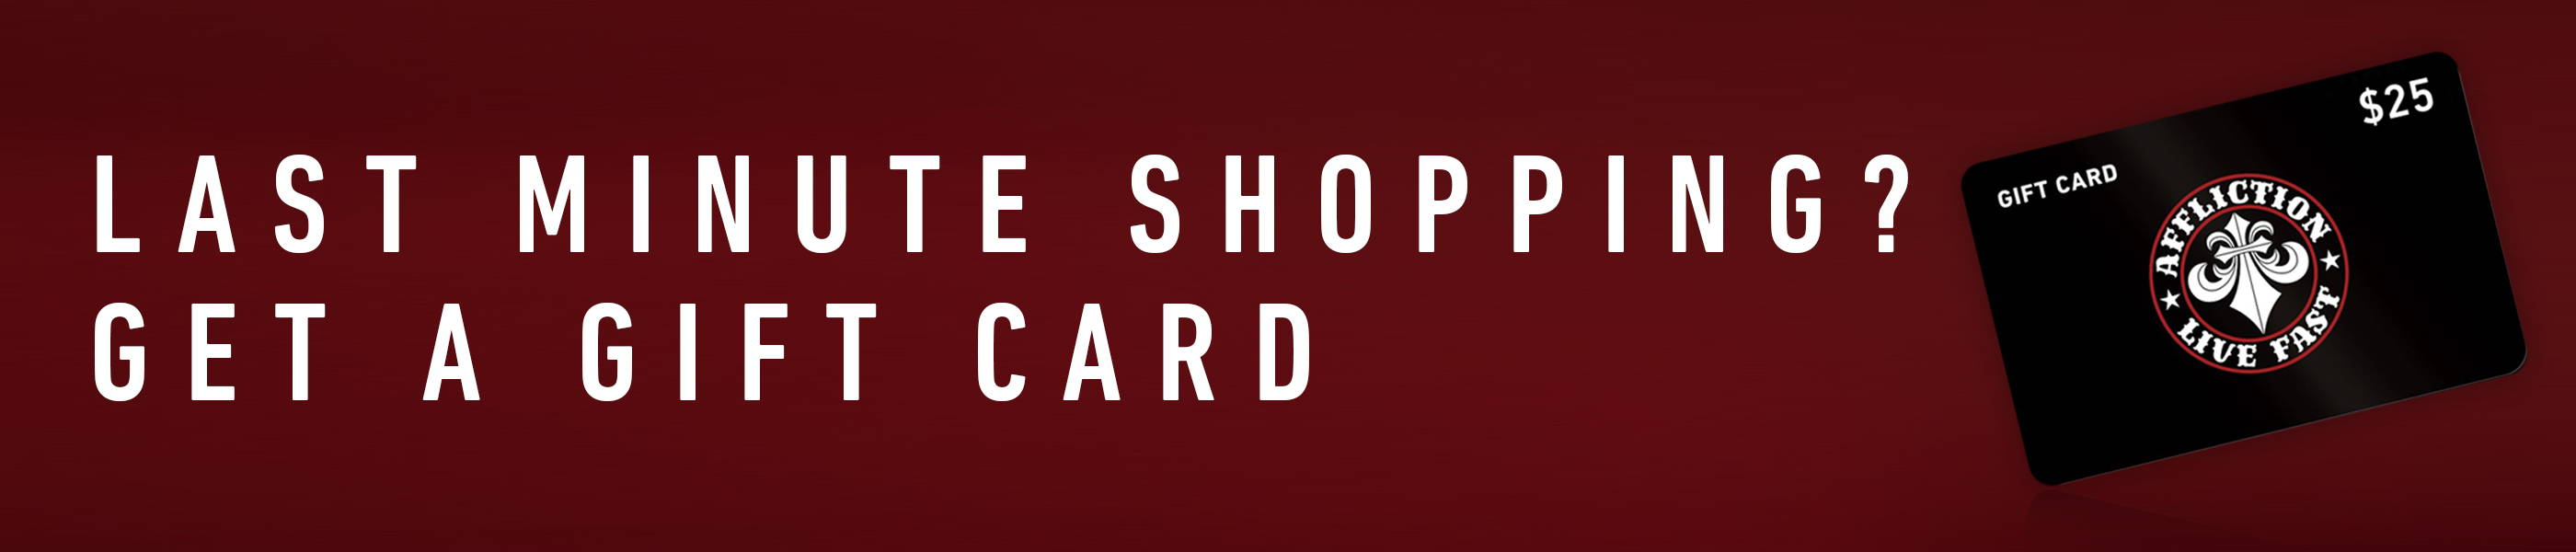 Last Minute Shopping? Get a Gift Card!